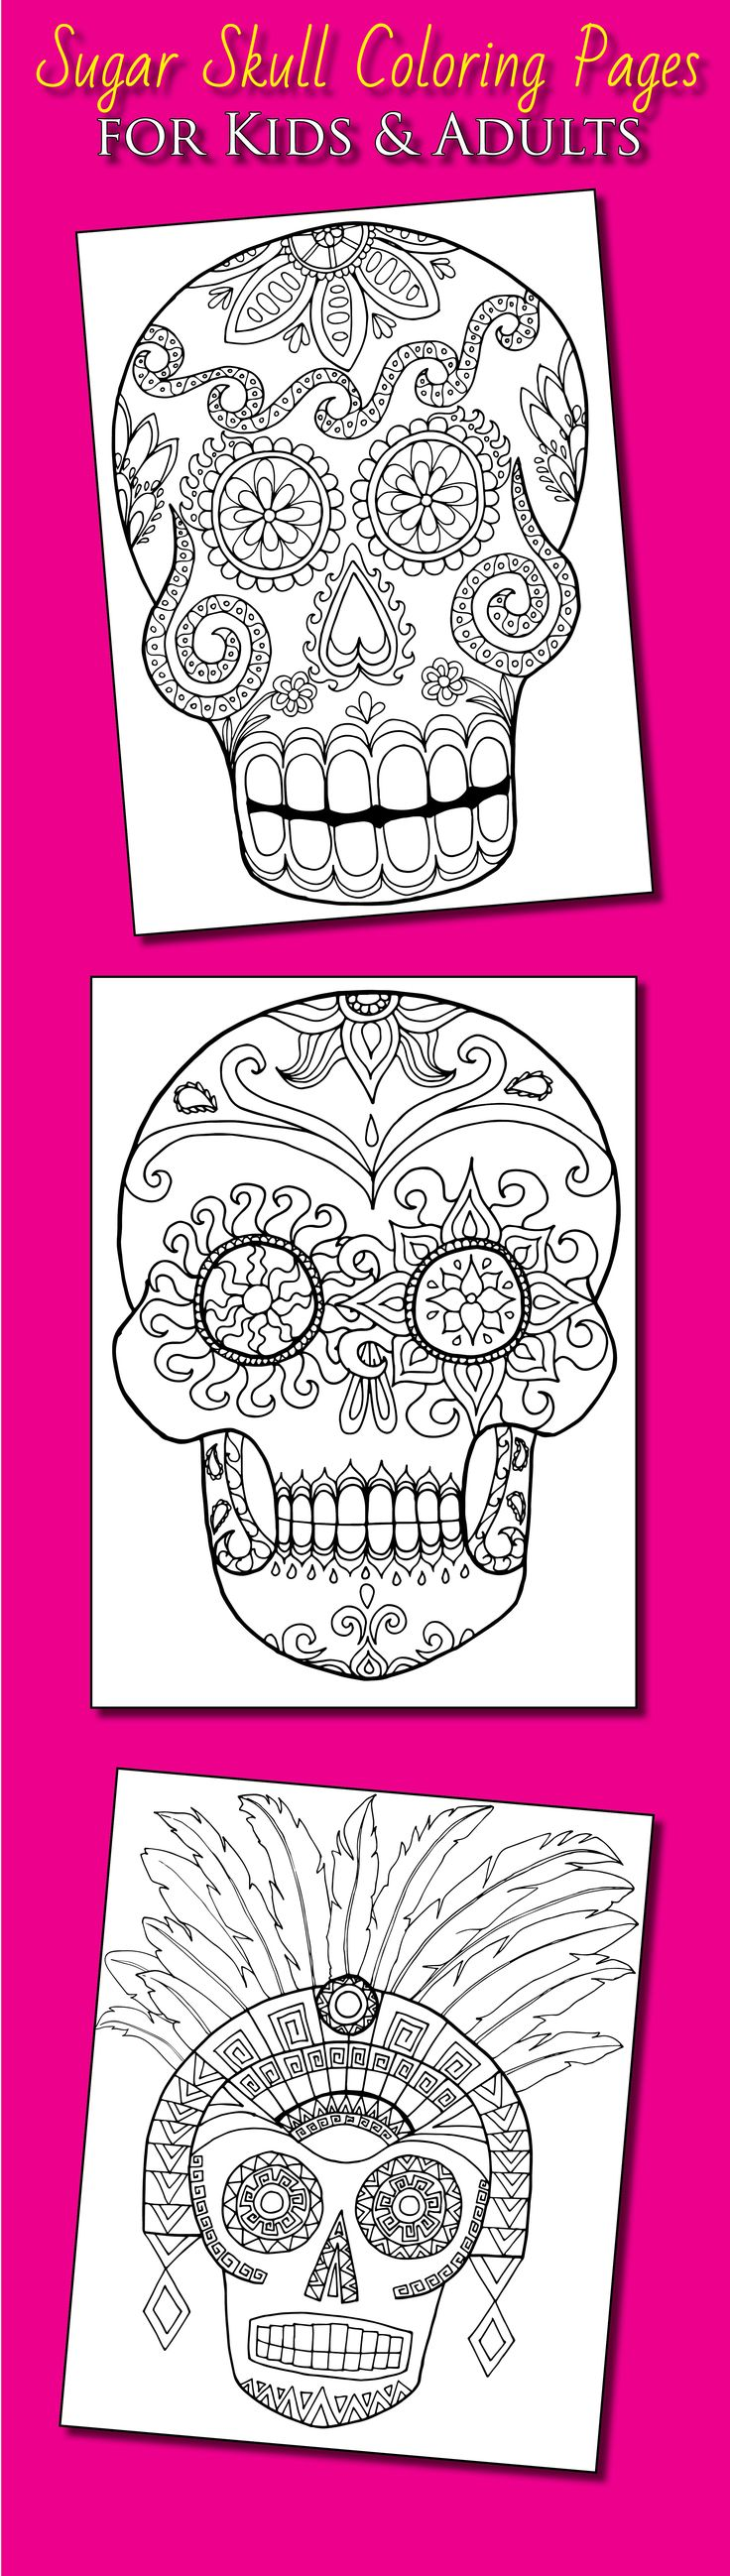 Gr grown up colouring in pages - Dia De Los Muertos Sugar Skull Coloring Sheets For Kids And Adults From The Day Of